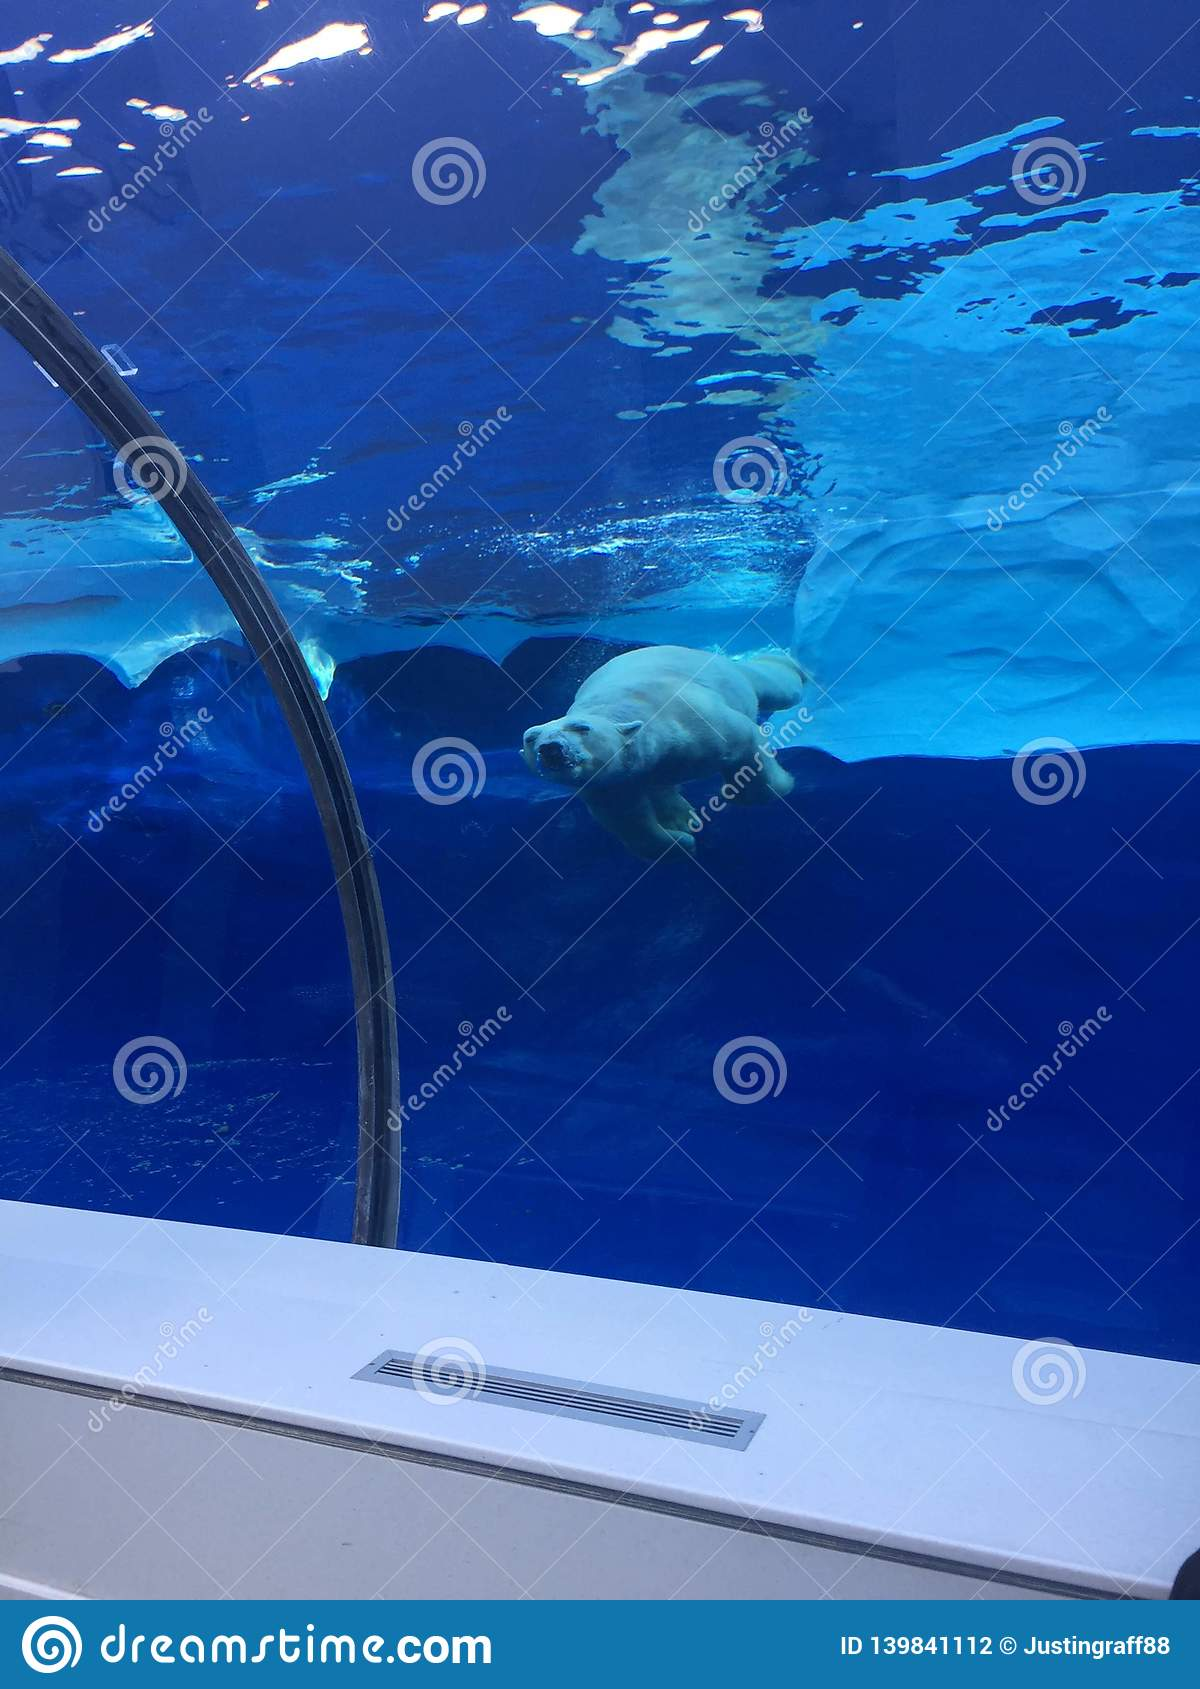 Polar bear swimming in a large pool like the ocean with icebergs